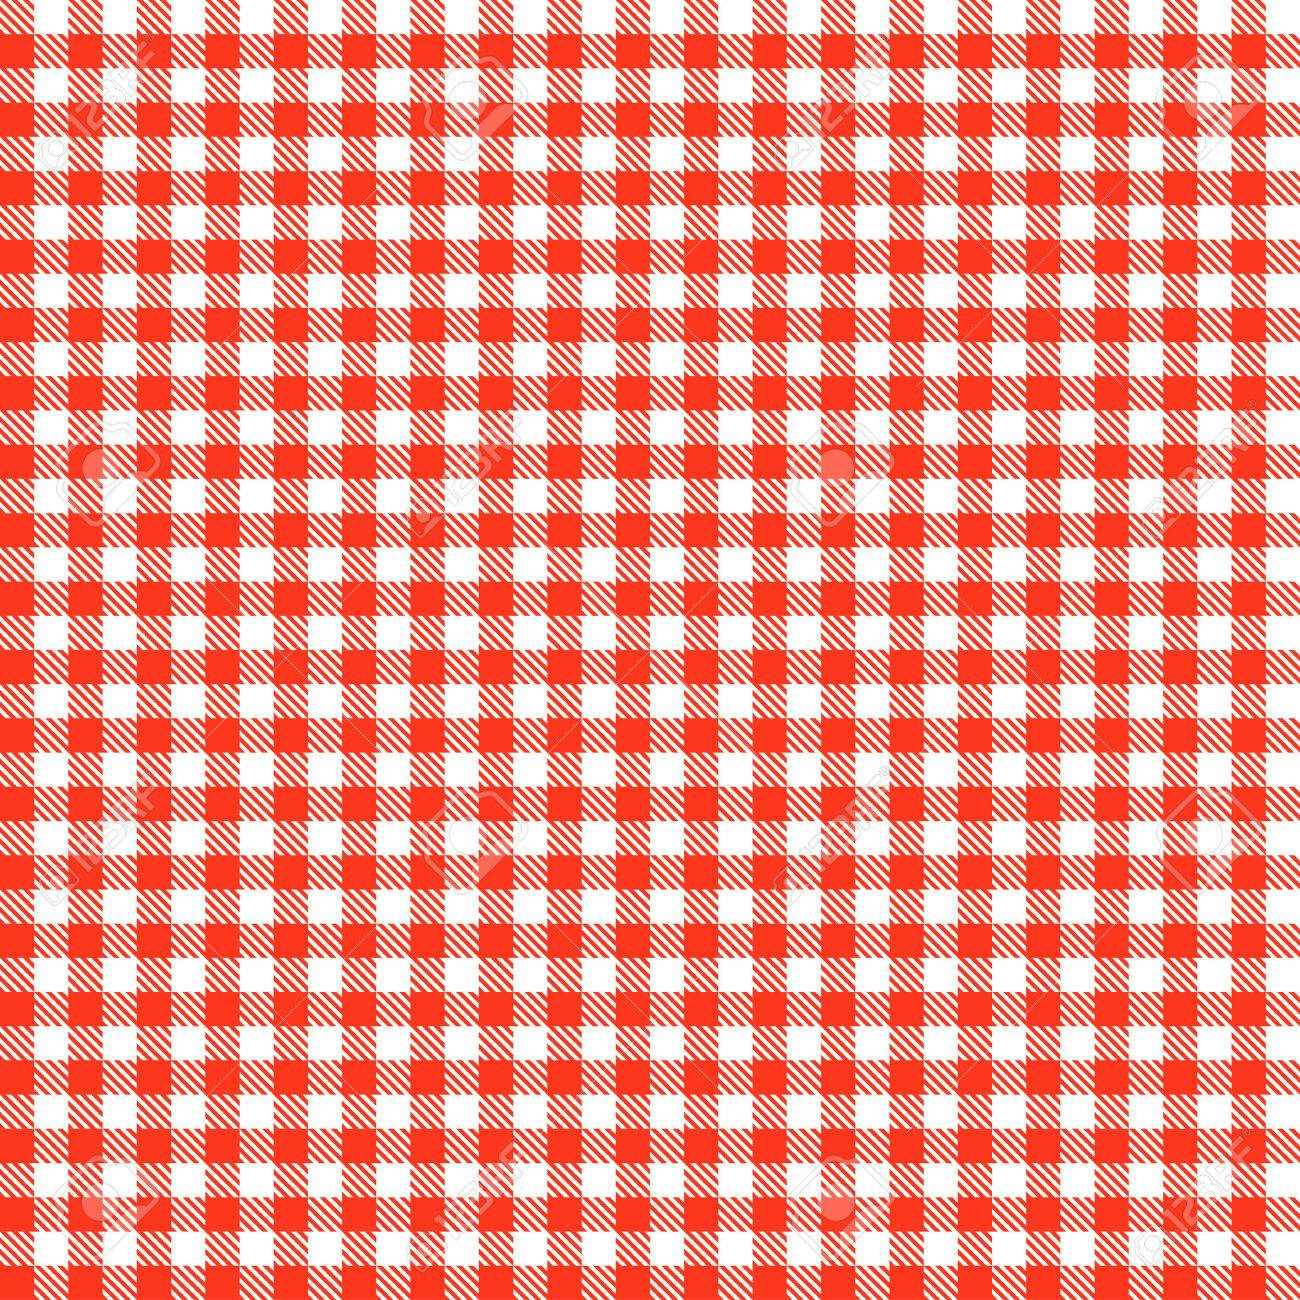 attractive Checkered Tablecloths Part - 6: Checkered tablecloths patterns RED Endlessly Stock Vector - 41386068